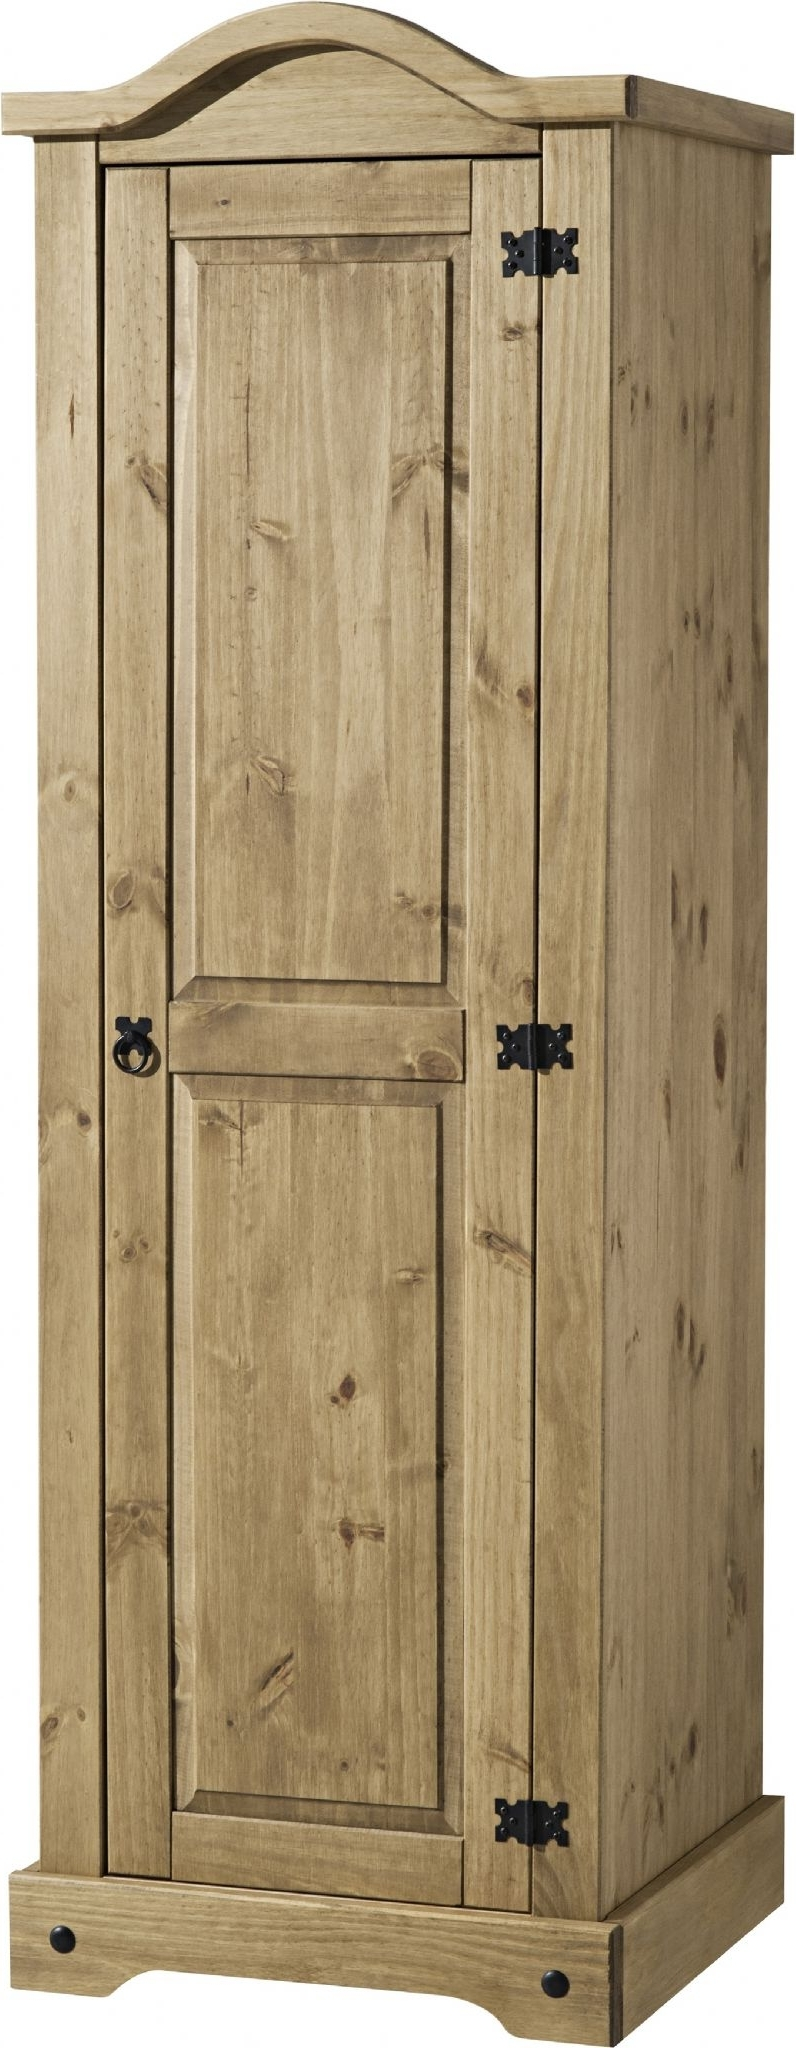 Corona Single One Mirrored Door 1 Drawer Armoire Wardrobe With Fashionable Single Pine Wardrobes (View 11 of 15)